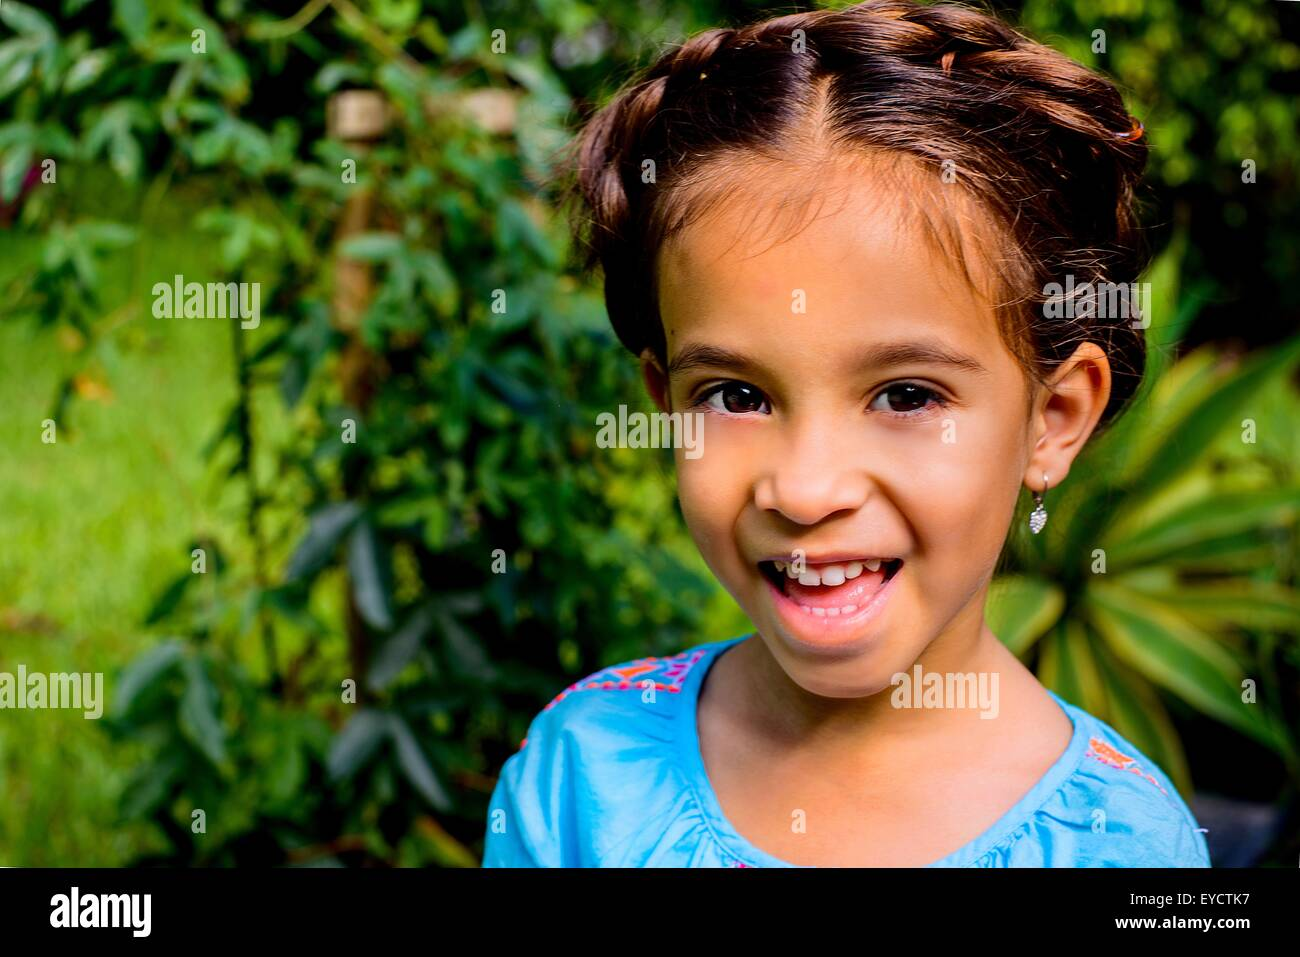 Outdoorioutdoorimg Tag: Portrait Of Pretty Girl In Garden Stock Photo: 85719963